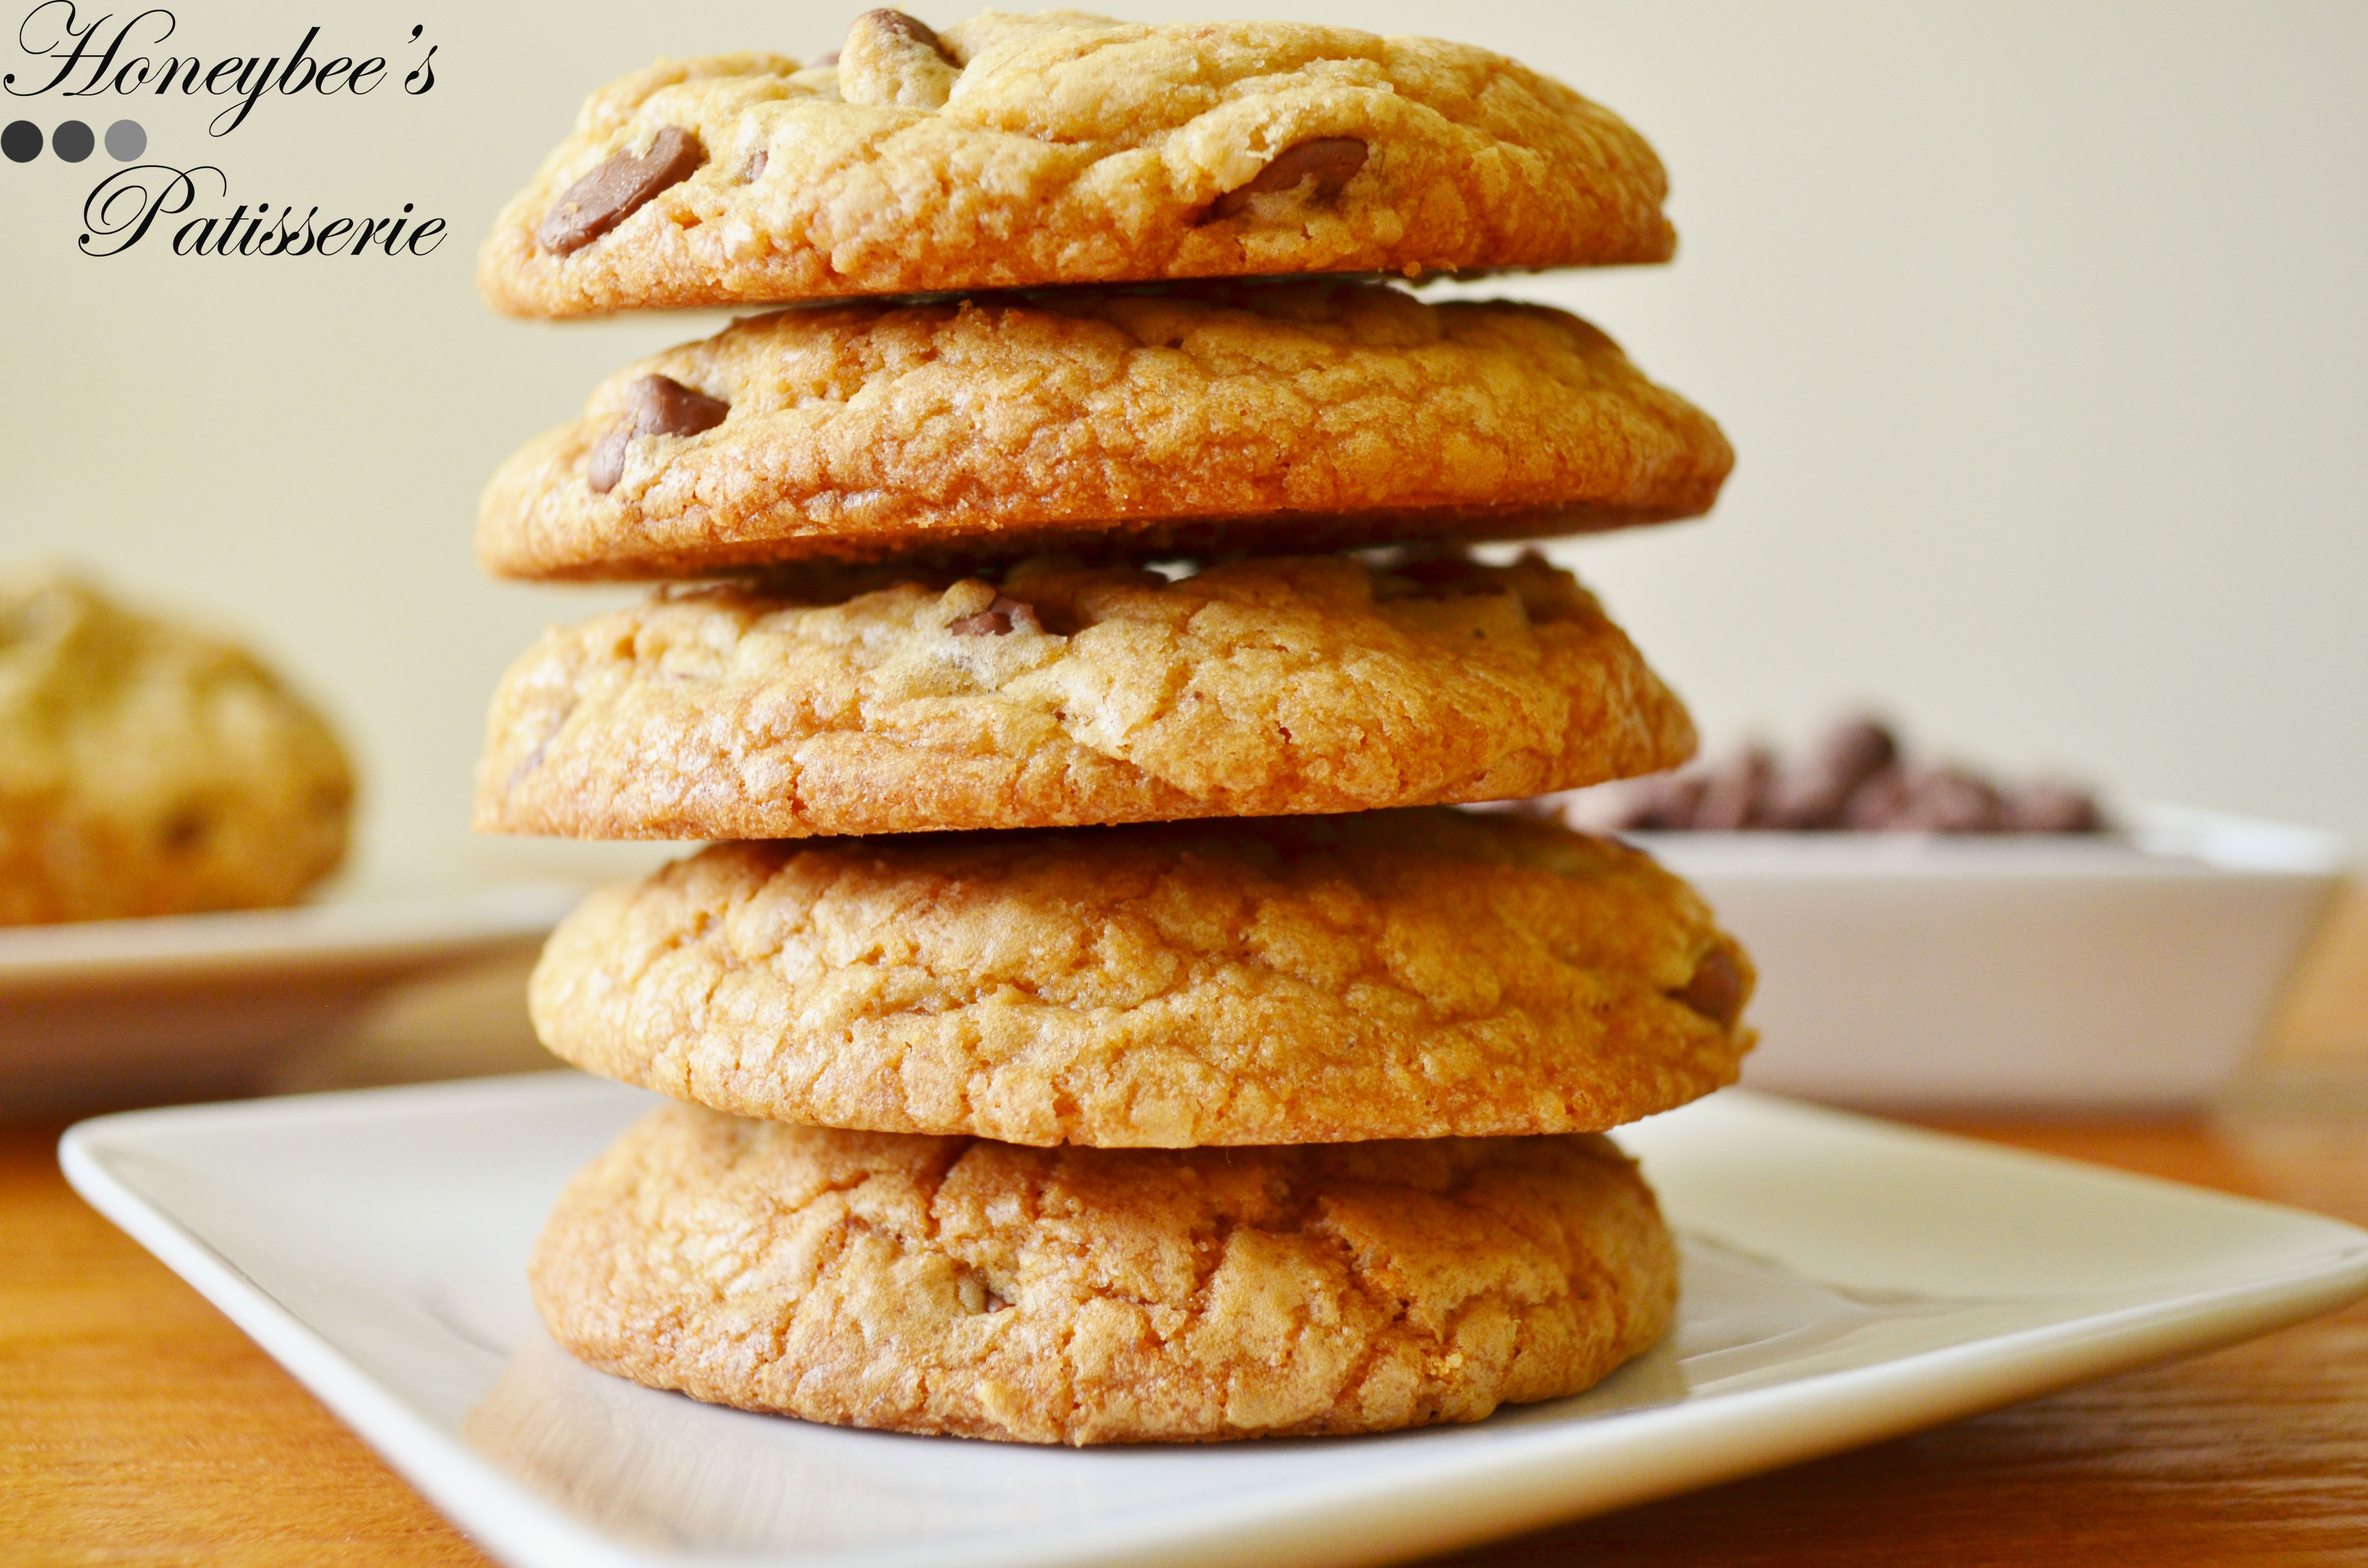 Better Than Toll House Chocolate Chip Cookies – Honeybee's Patisserie